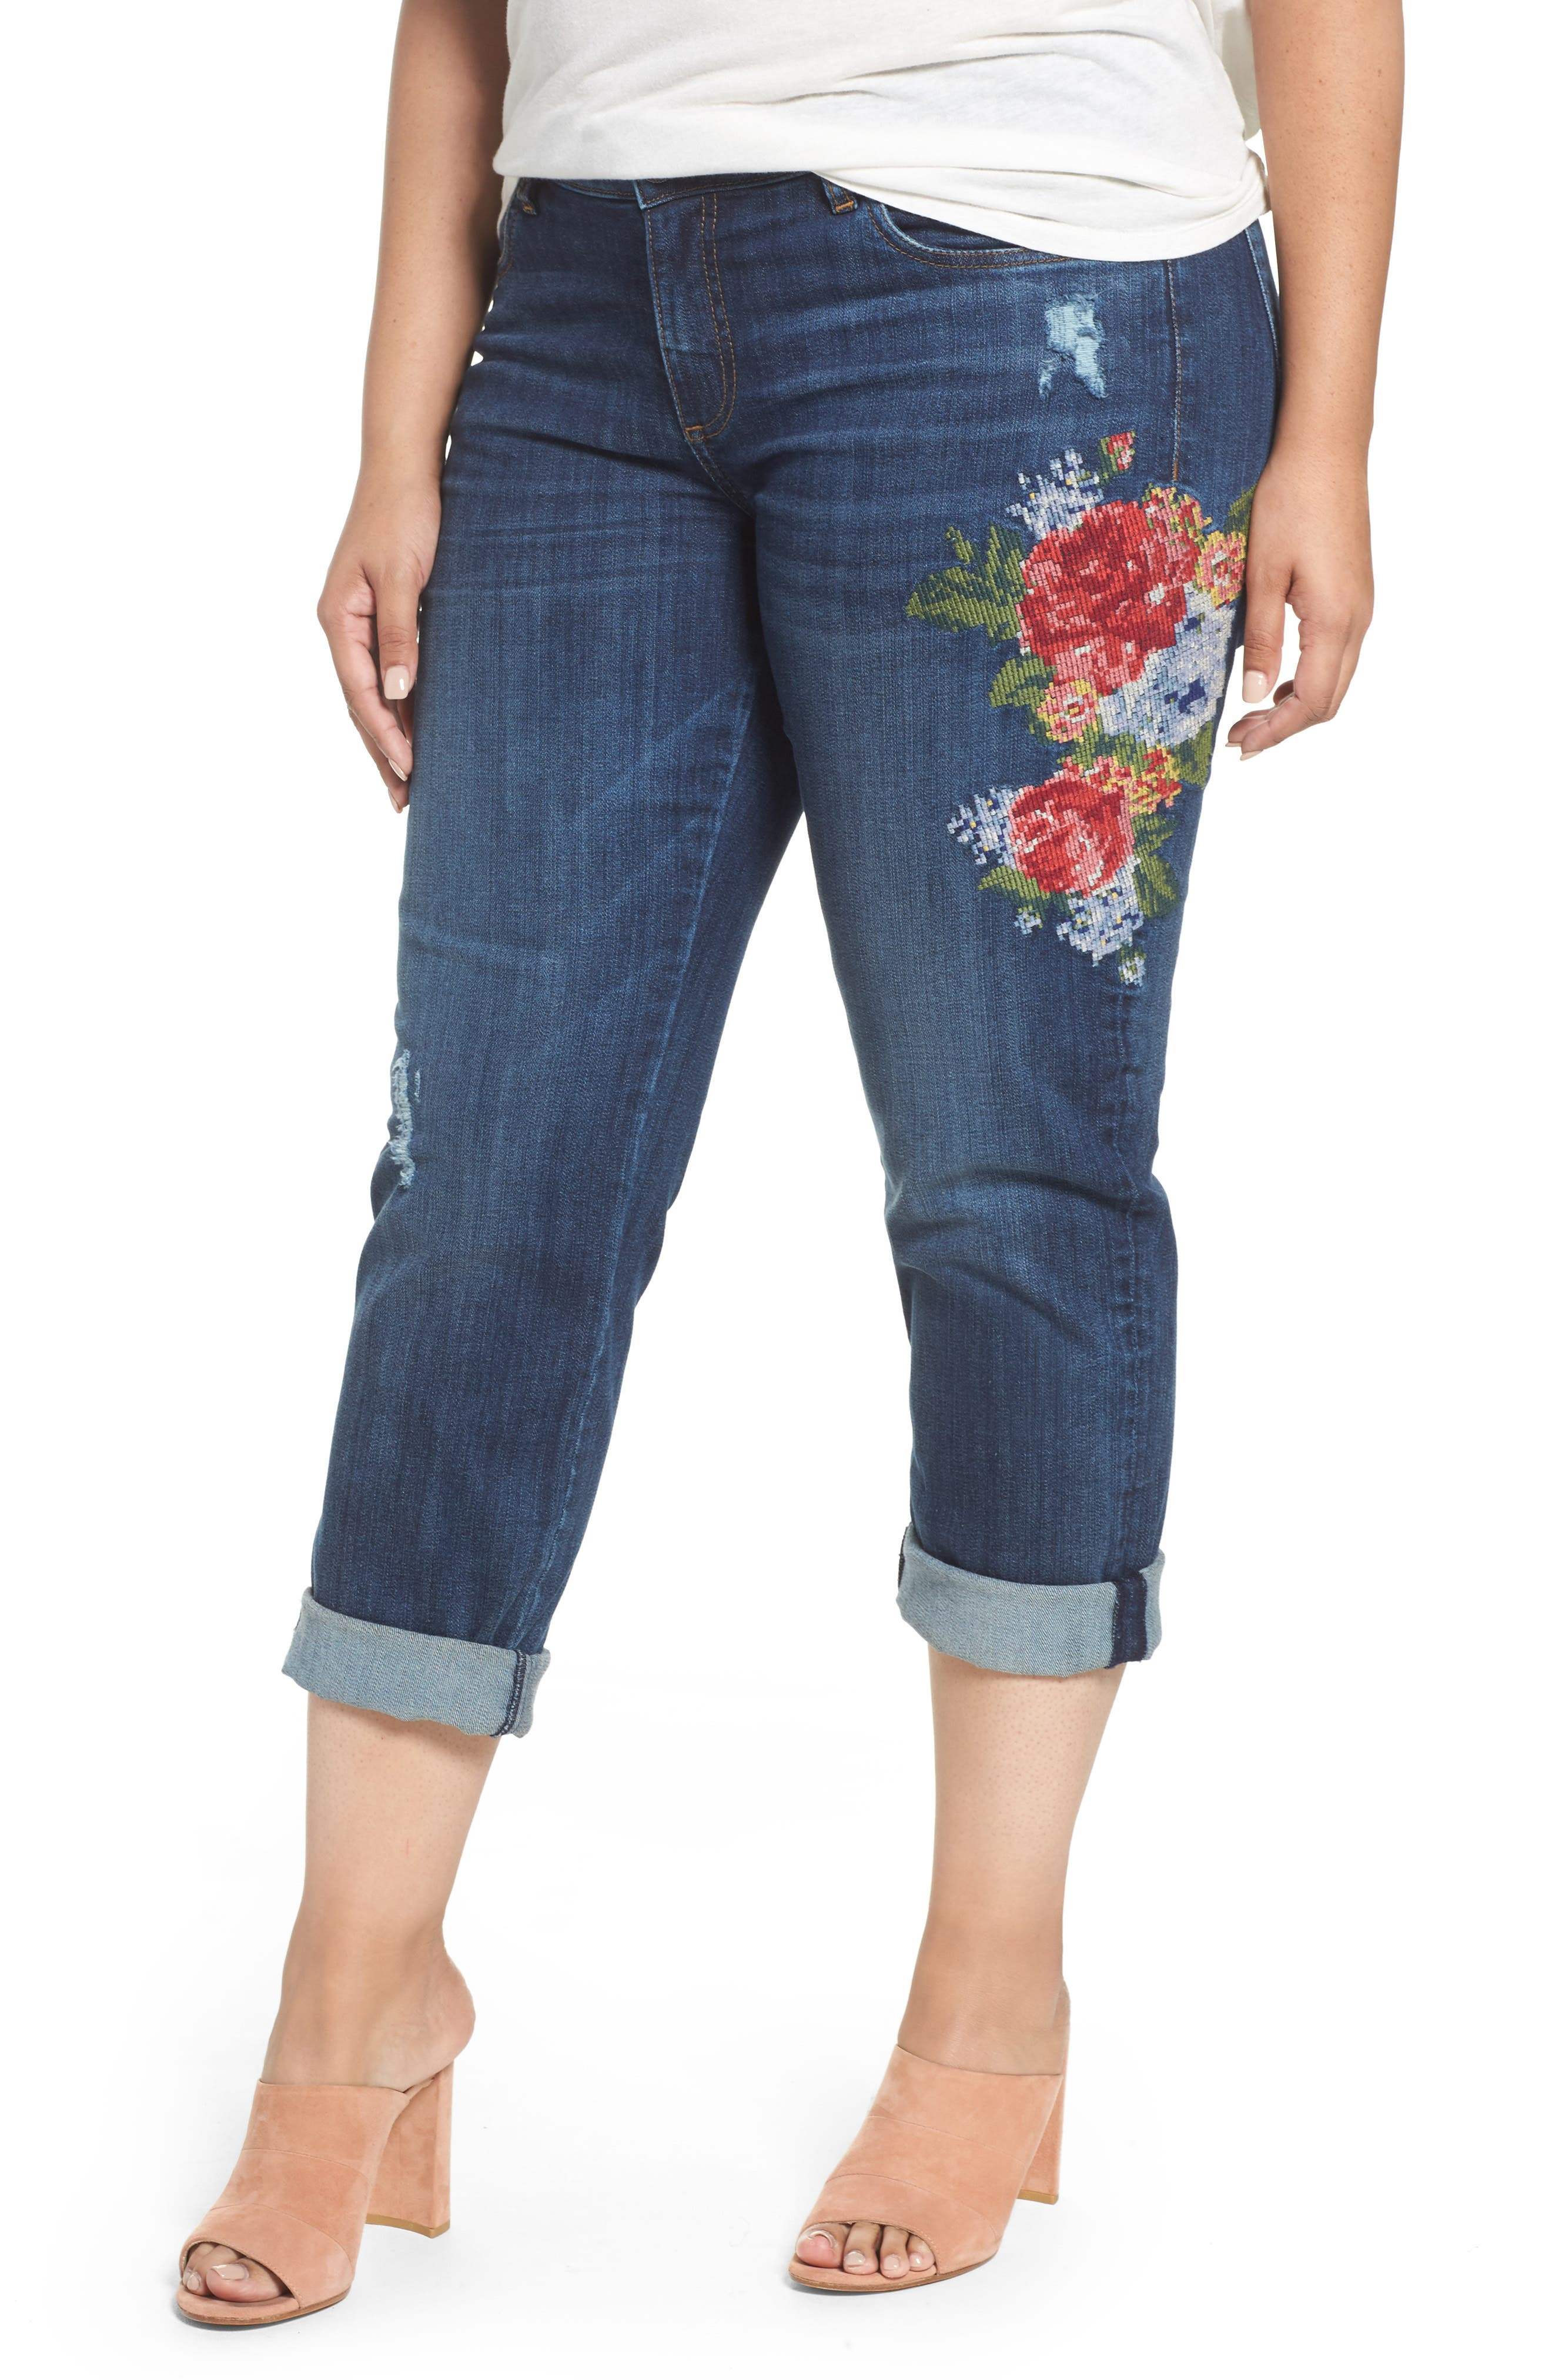 Alternate Image 1 Selected - KUT from the Kloth Catherine Embroidered Boyfriend Jeans (Premier Dark) (Plus Size)